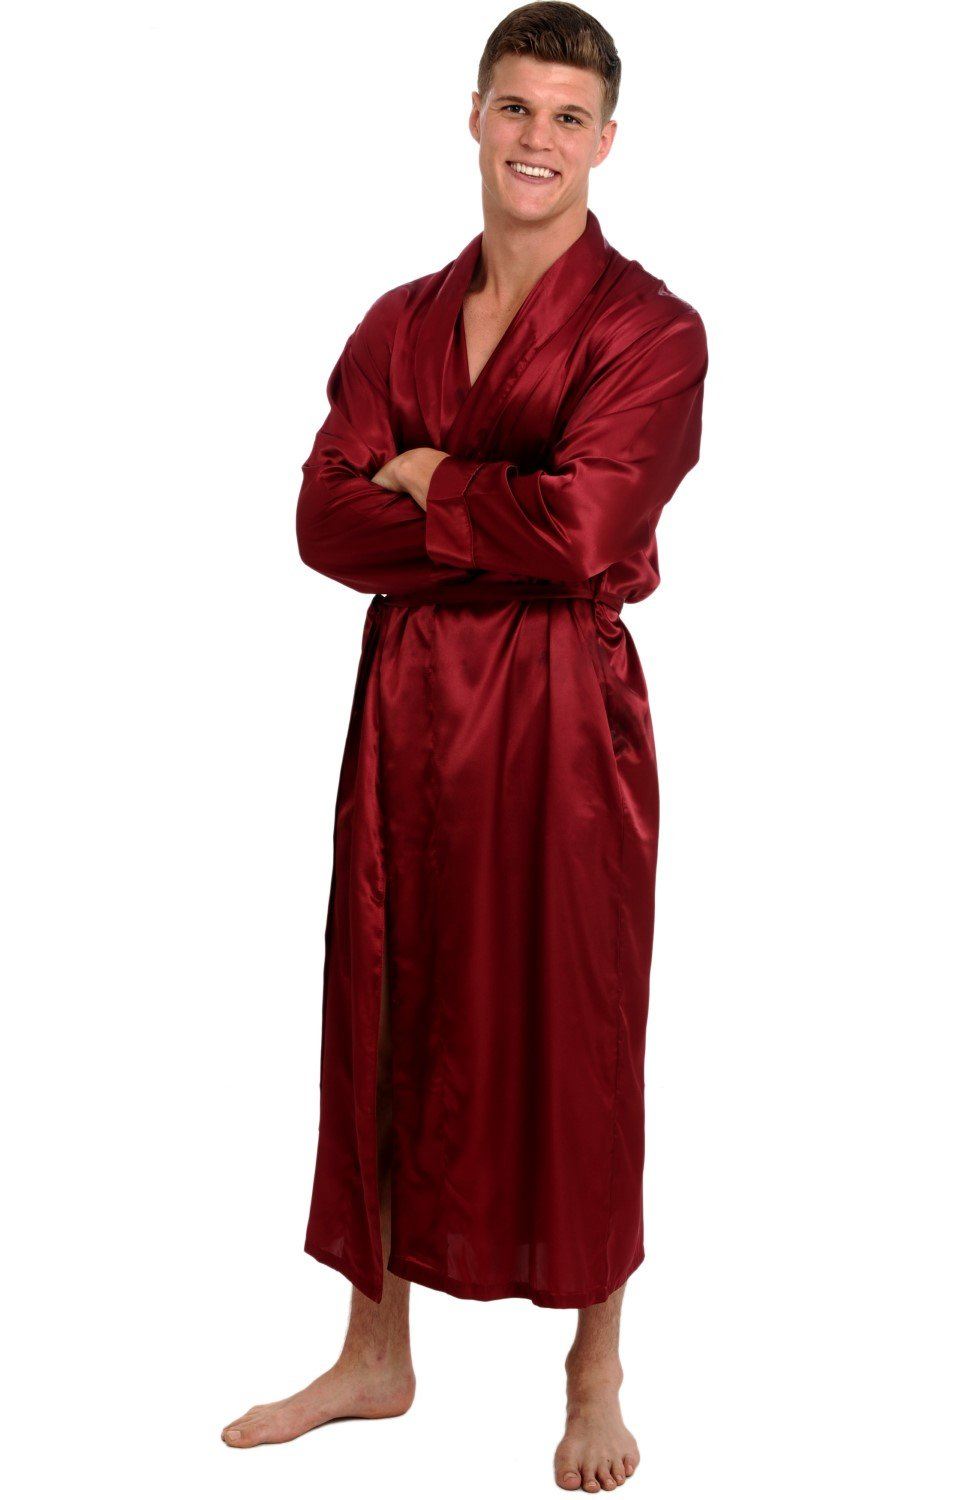 Alexander Del Rossa Mens Satin Solid Color Robe, Long Lightweight Loungewear A0720-Solid